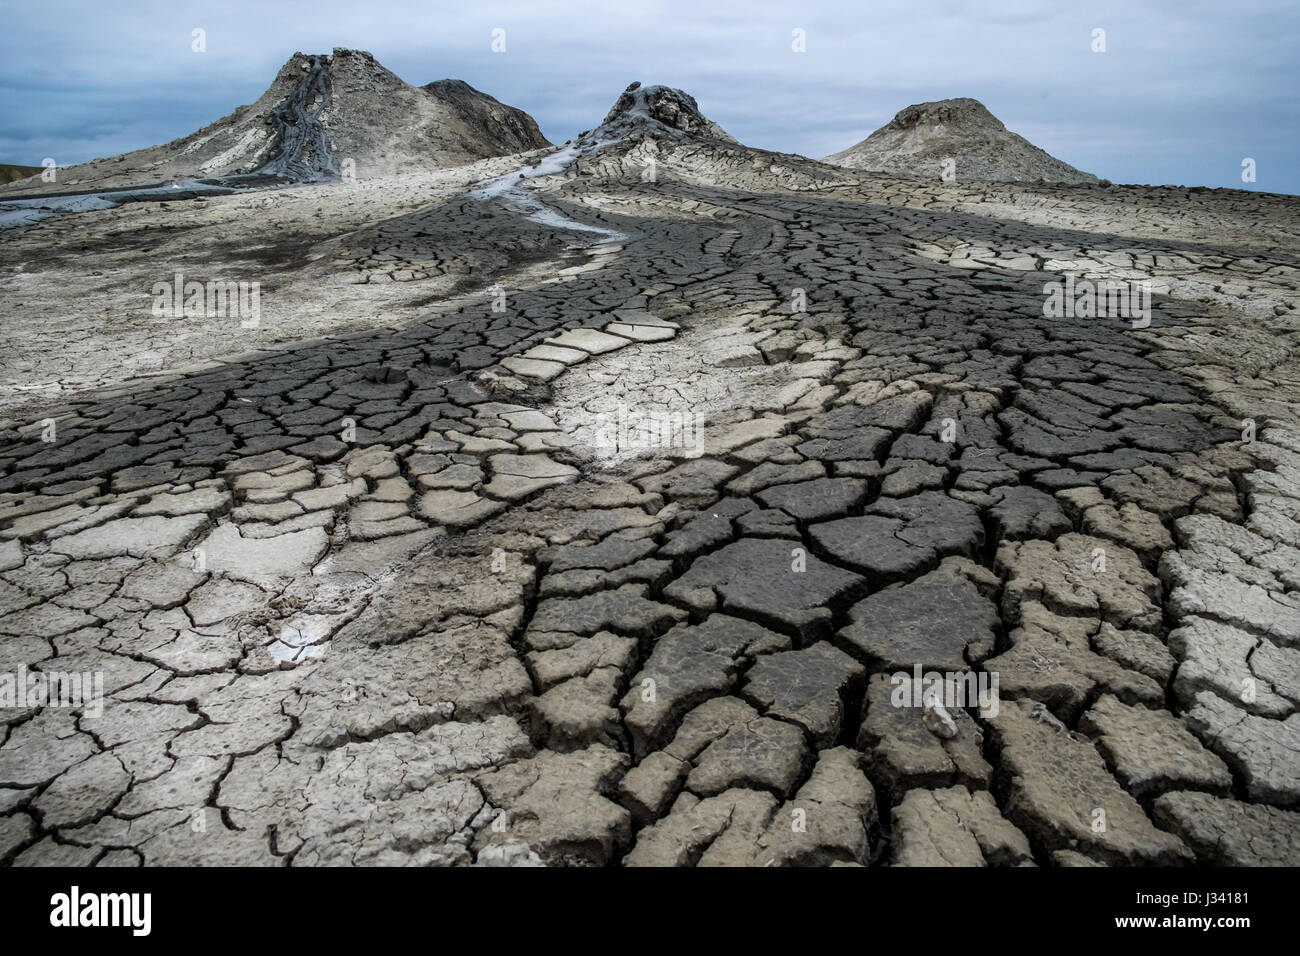 The quirky mud Volcanoes of Qobustan, Azerbaijan - Stock Image